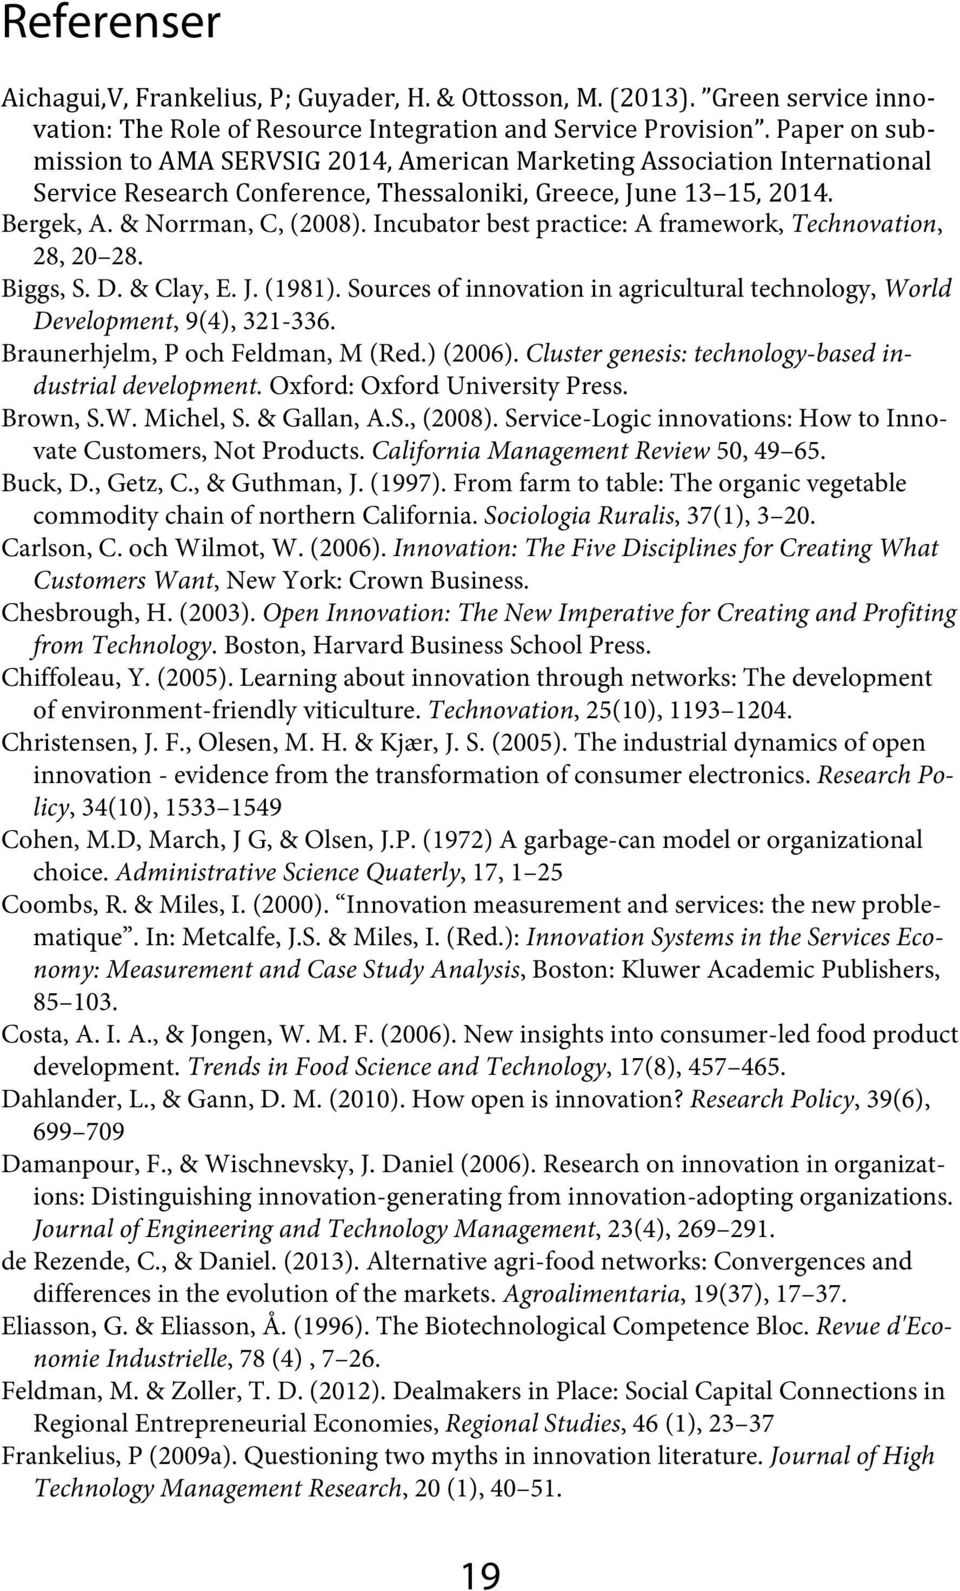 Incubator best practice: A framework, Technovation, 28, 20 28. Biggs, S. D. & Clay, E. J. (1981). Sources of innovation in agricultural technology, World Development, 9(4), 321-336.